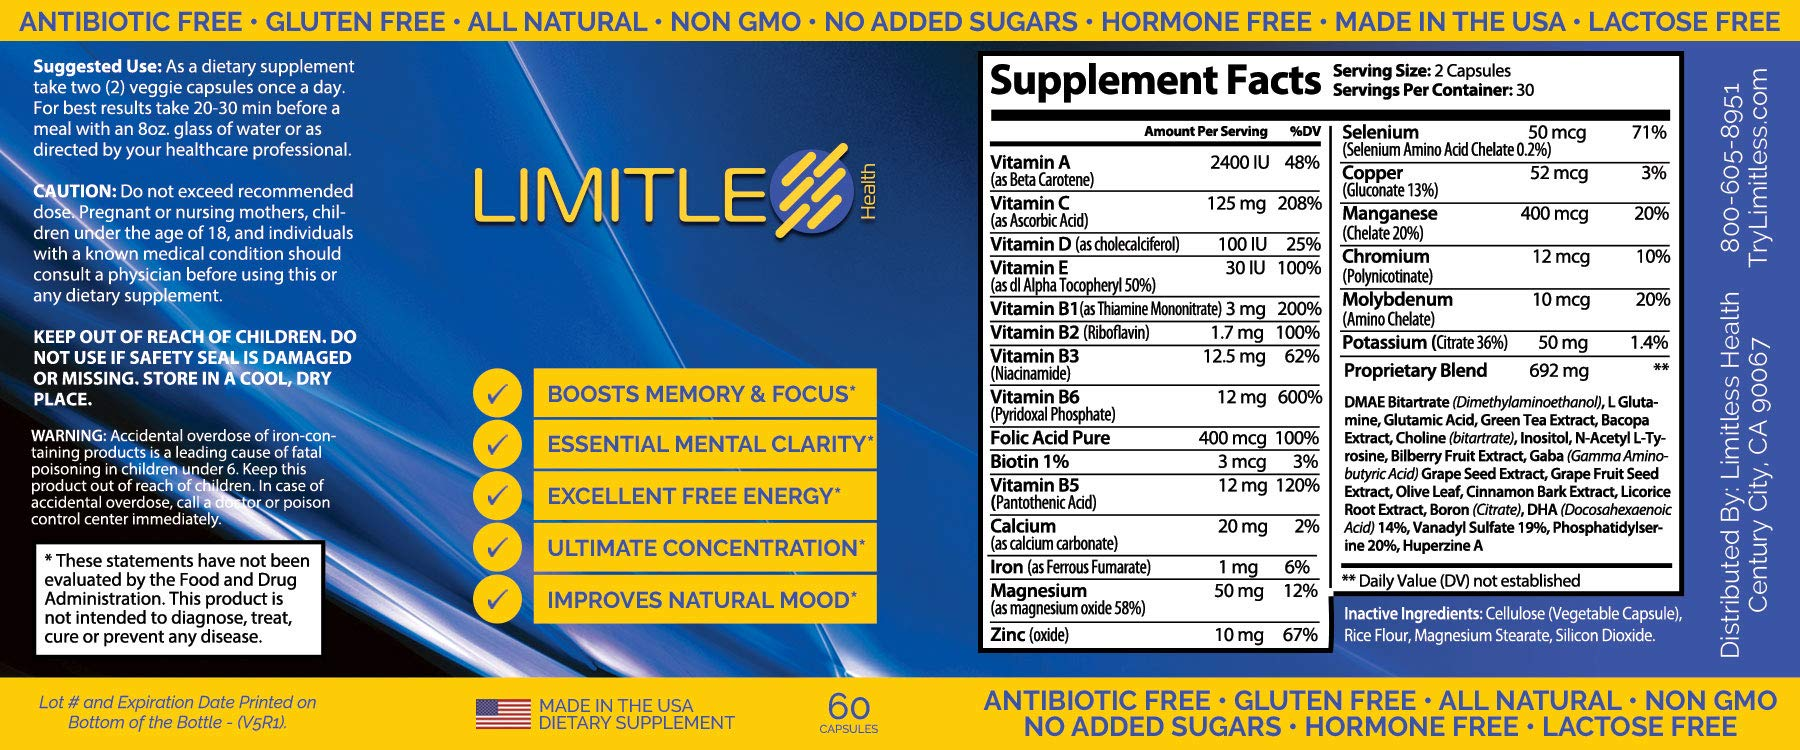 Limitless Health - Brain Function - 3 Bottles (Buy 2, Get 1 Free) - Three Month Supply - Results in 27 Minutes | 8 Ingredients | Improve Reaction Speed | AS Heard ON The Radio by Limitless Health